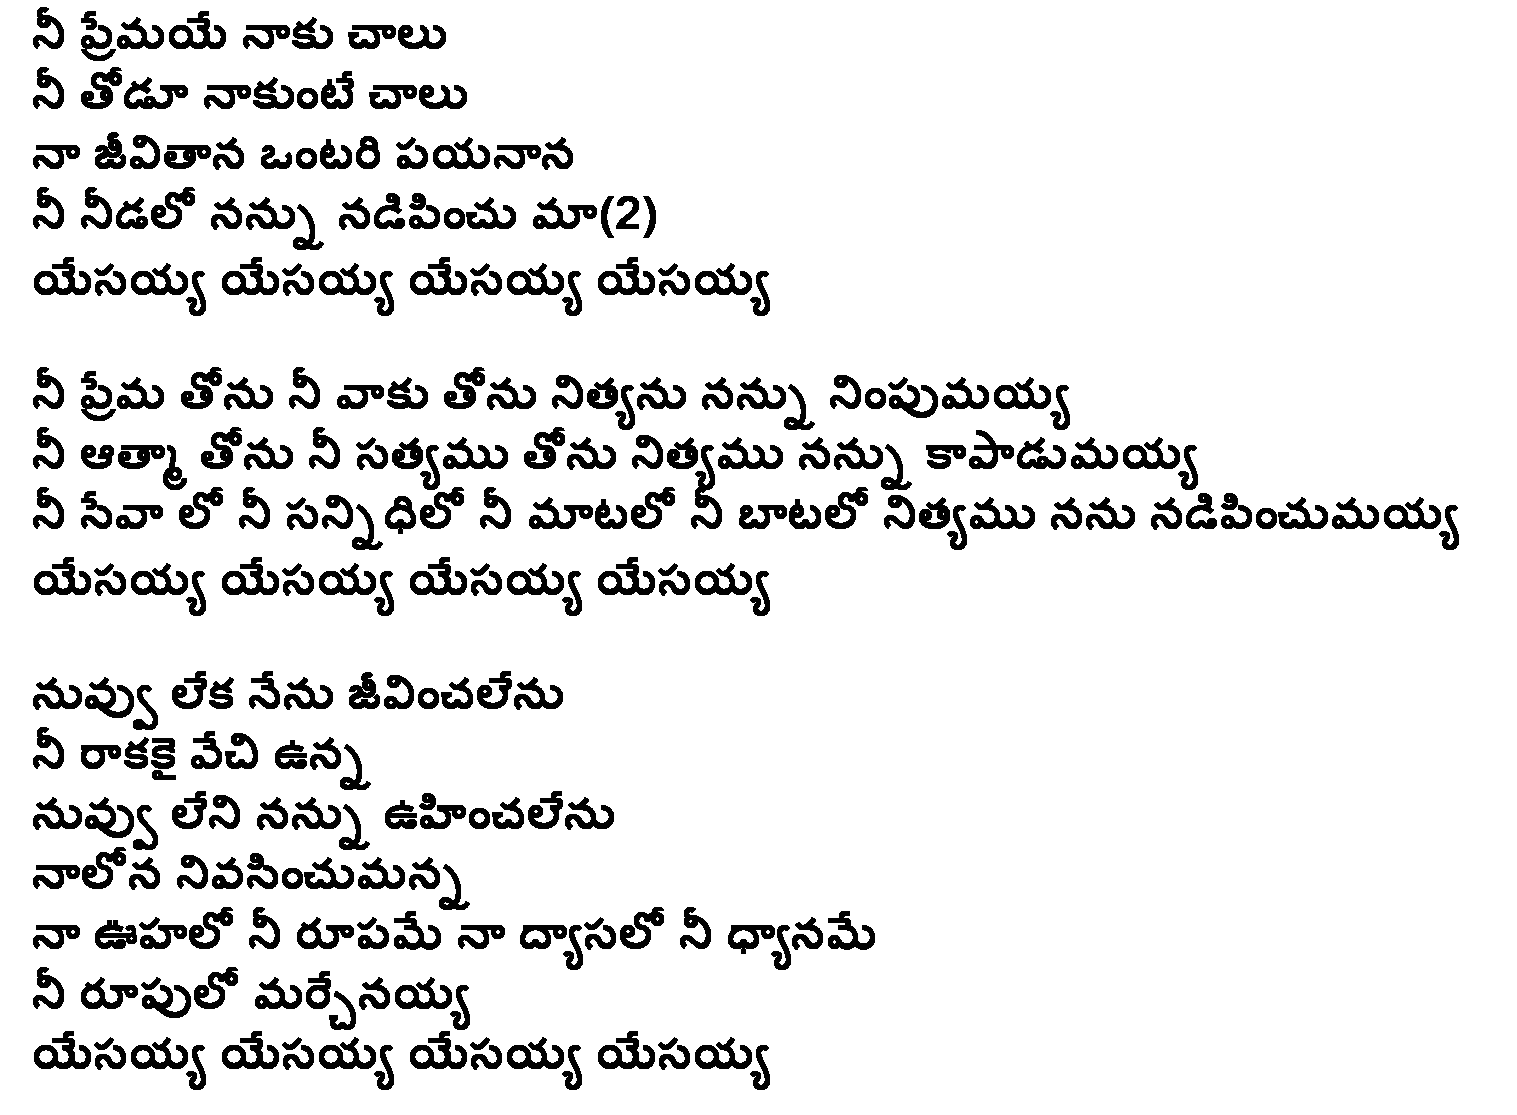 telugu bible download for android mobile